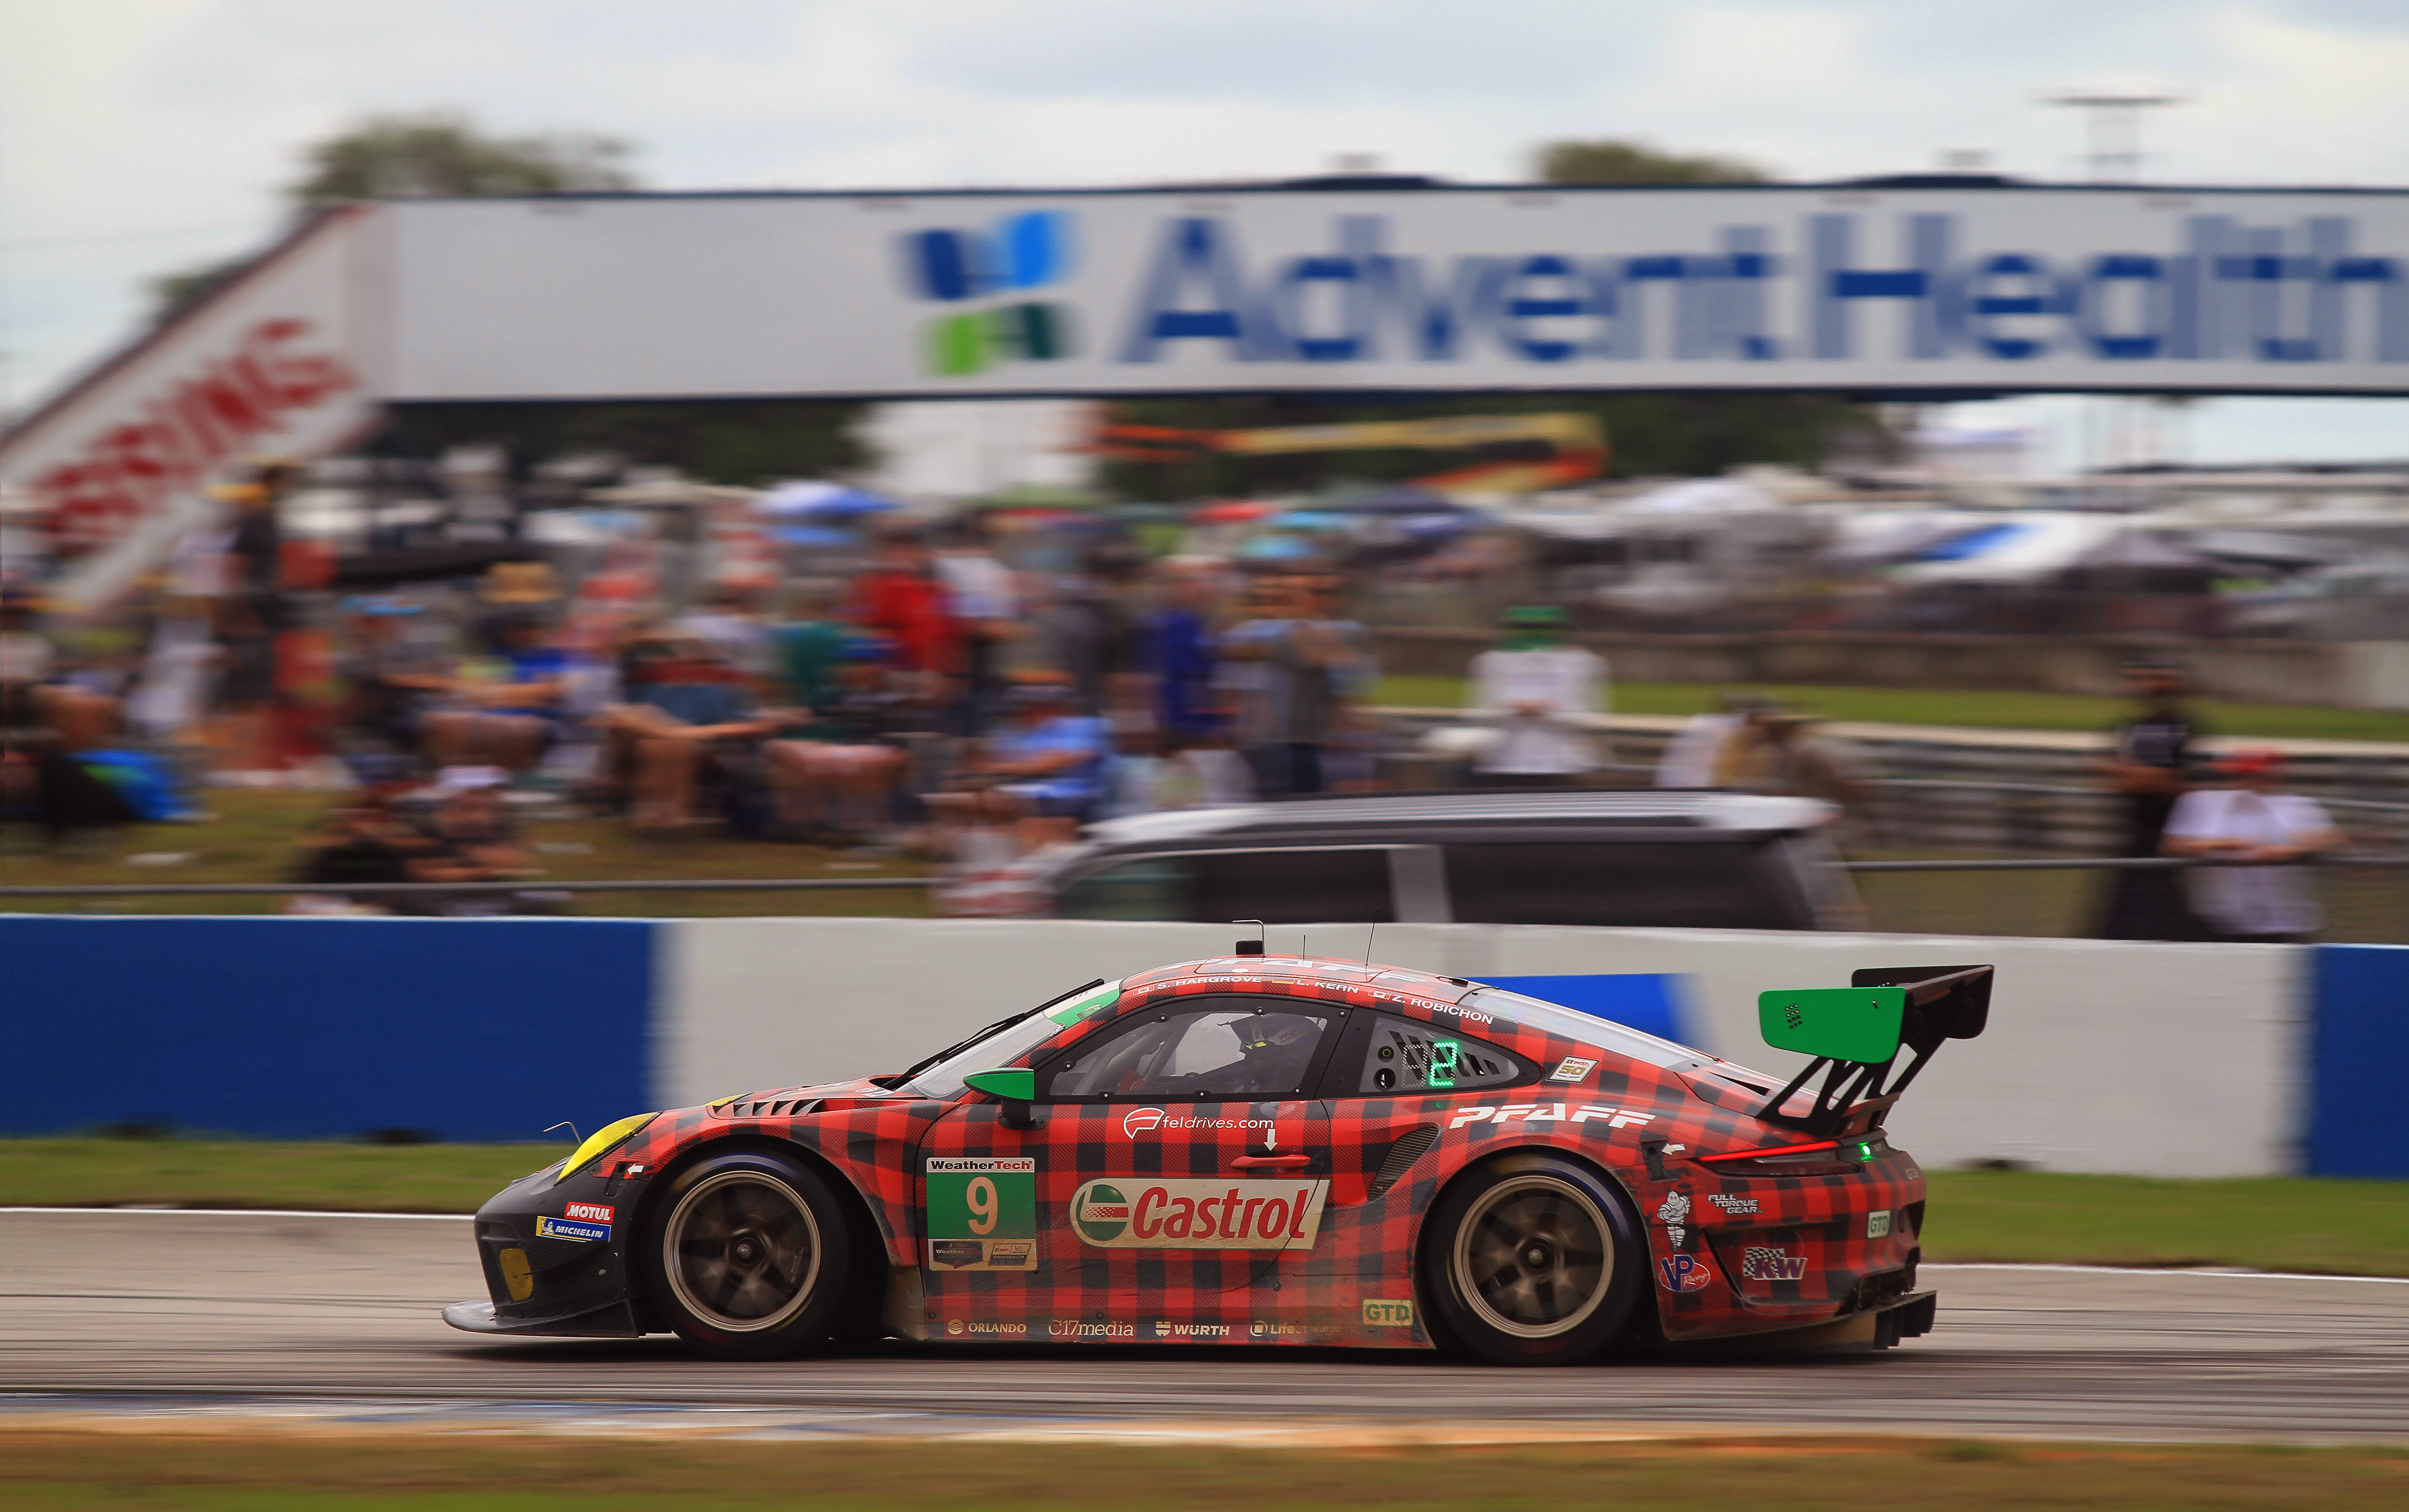 The #9 Pfaff Porsche led the GTD through much of the first 220-odd laps